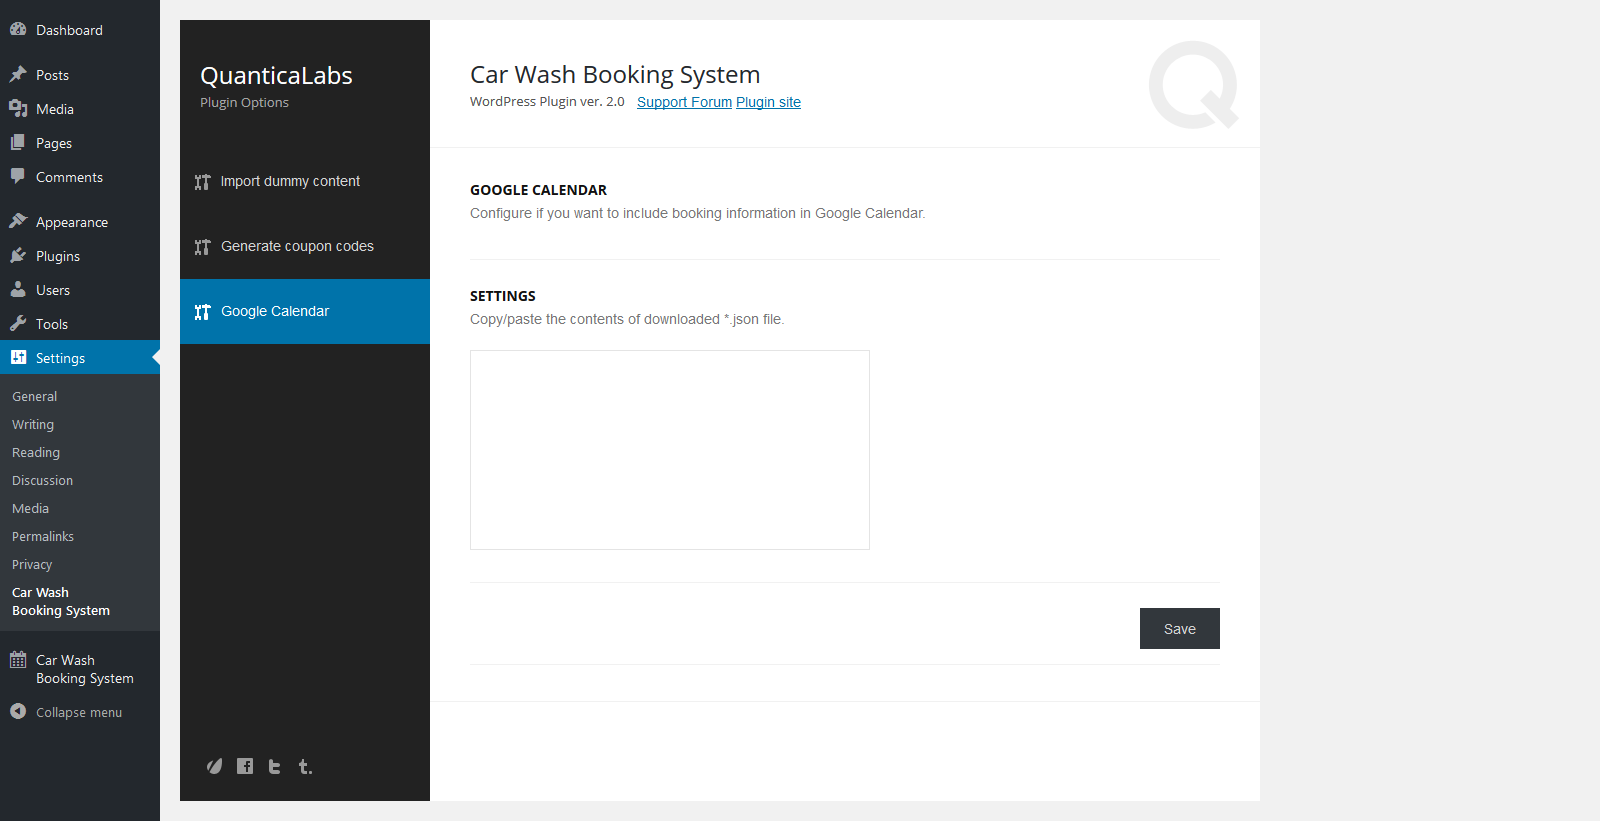 Car Wash Booking System For WordPress